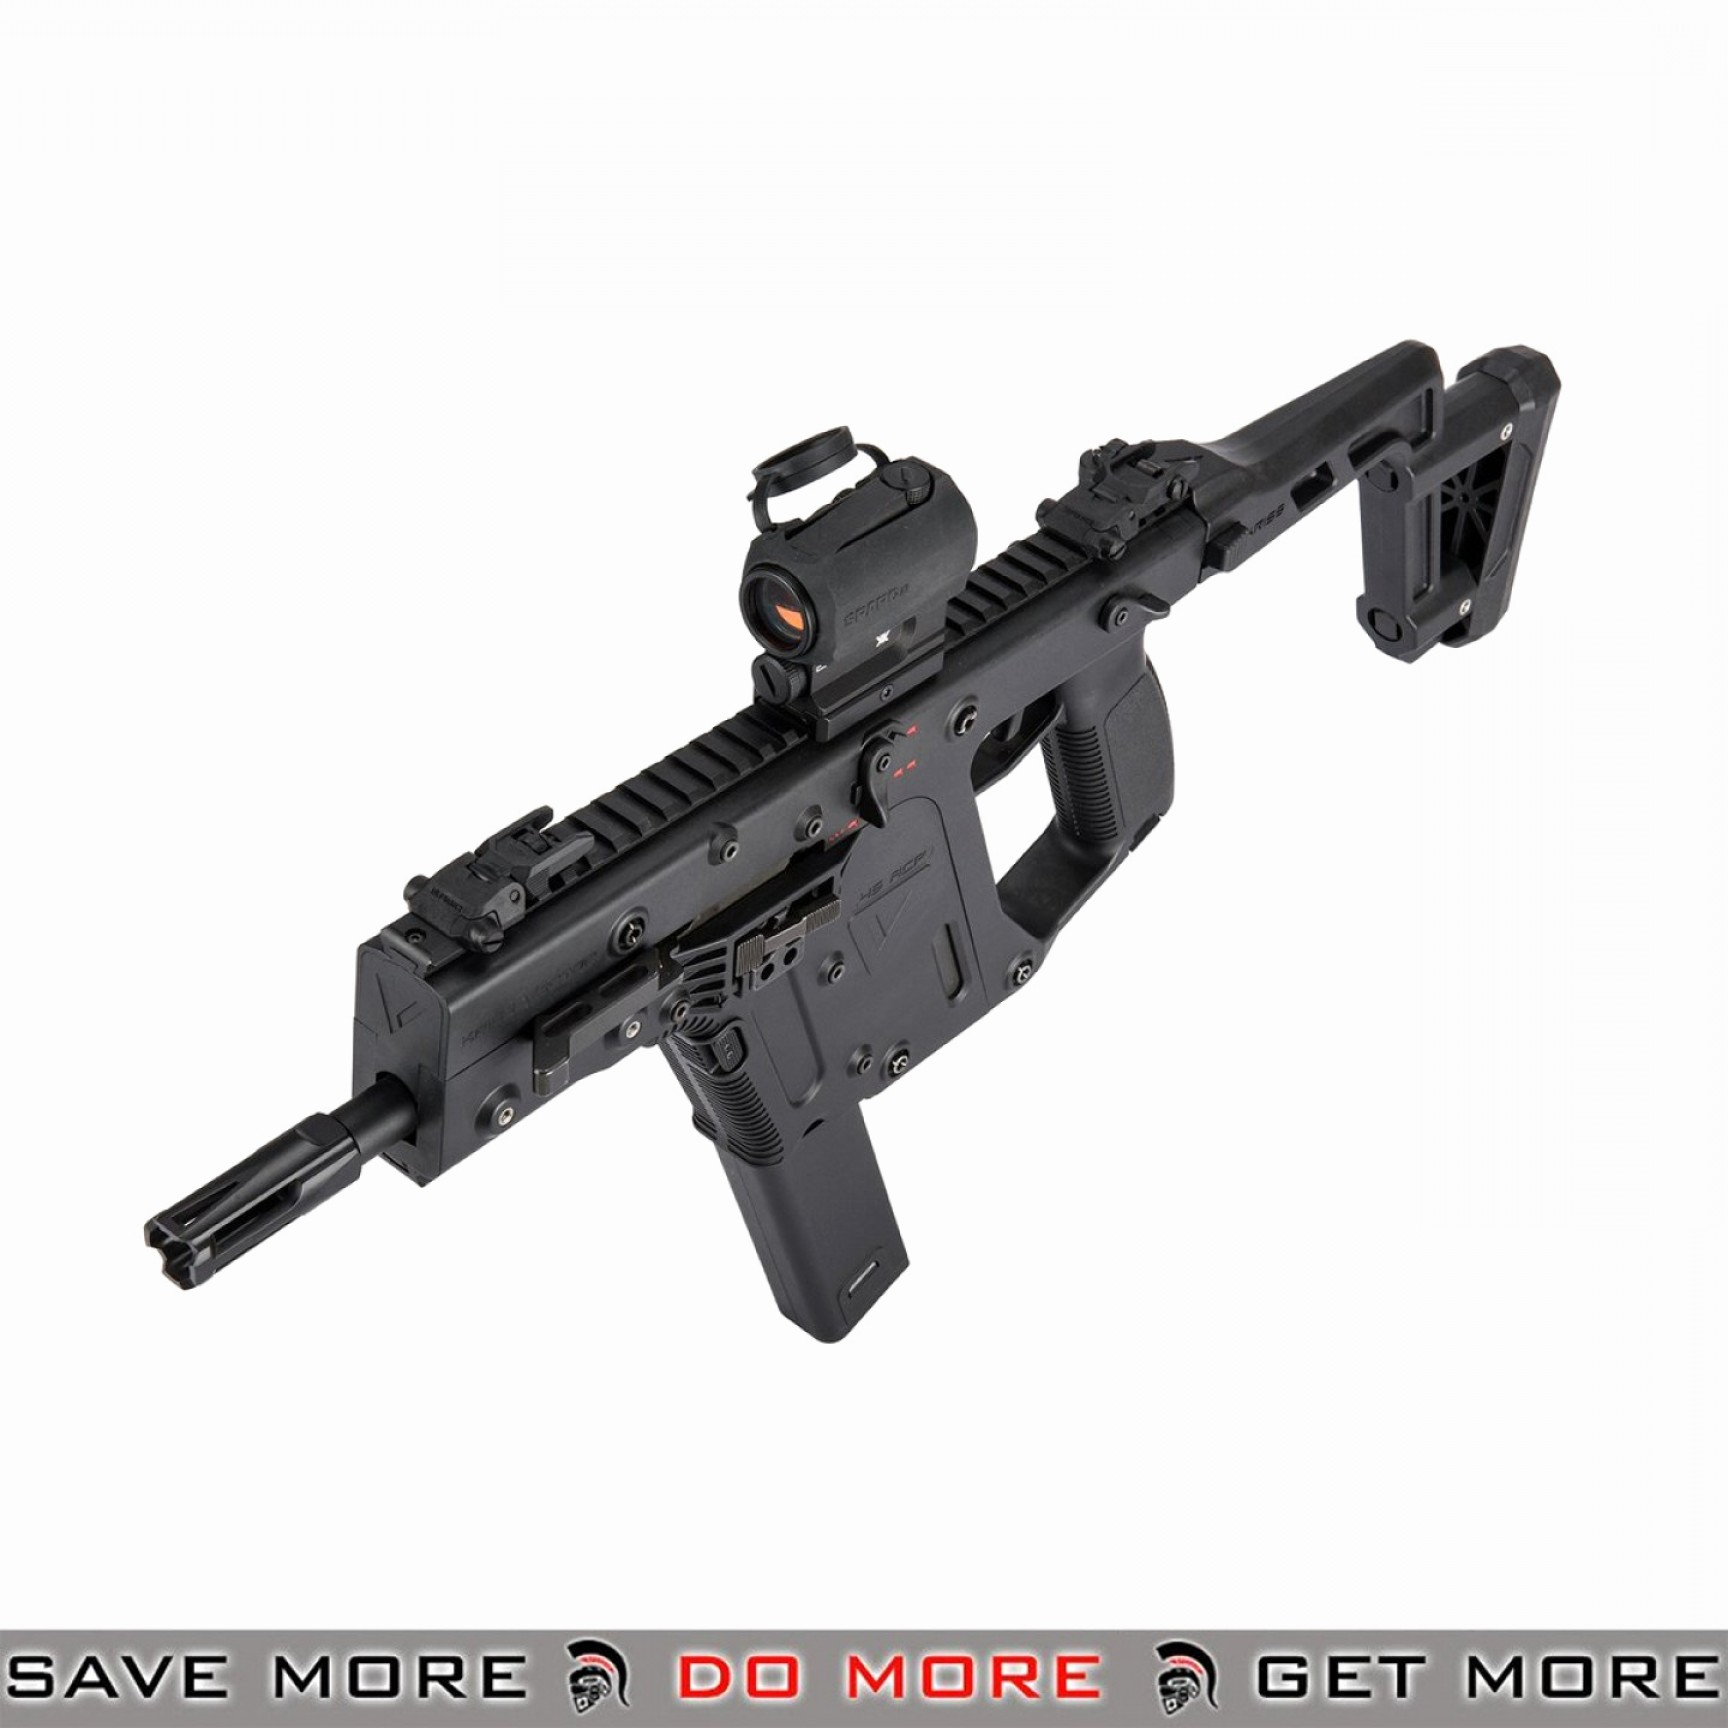 Vector SBR: Vector Smg For Sale Inspirational Kriss Usa Licensed Kriss Vector Sbr Airsoft Aeg Smg